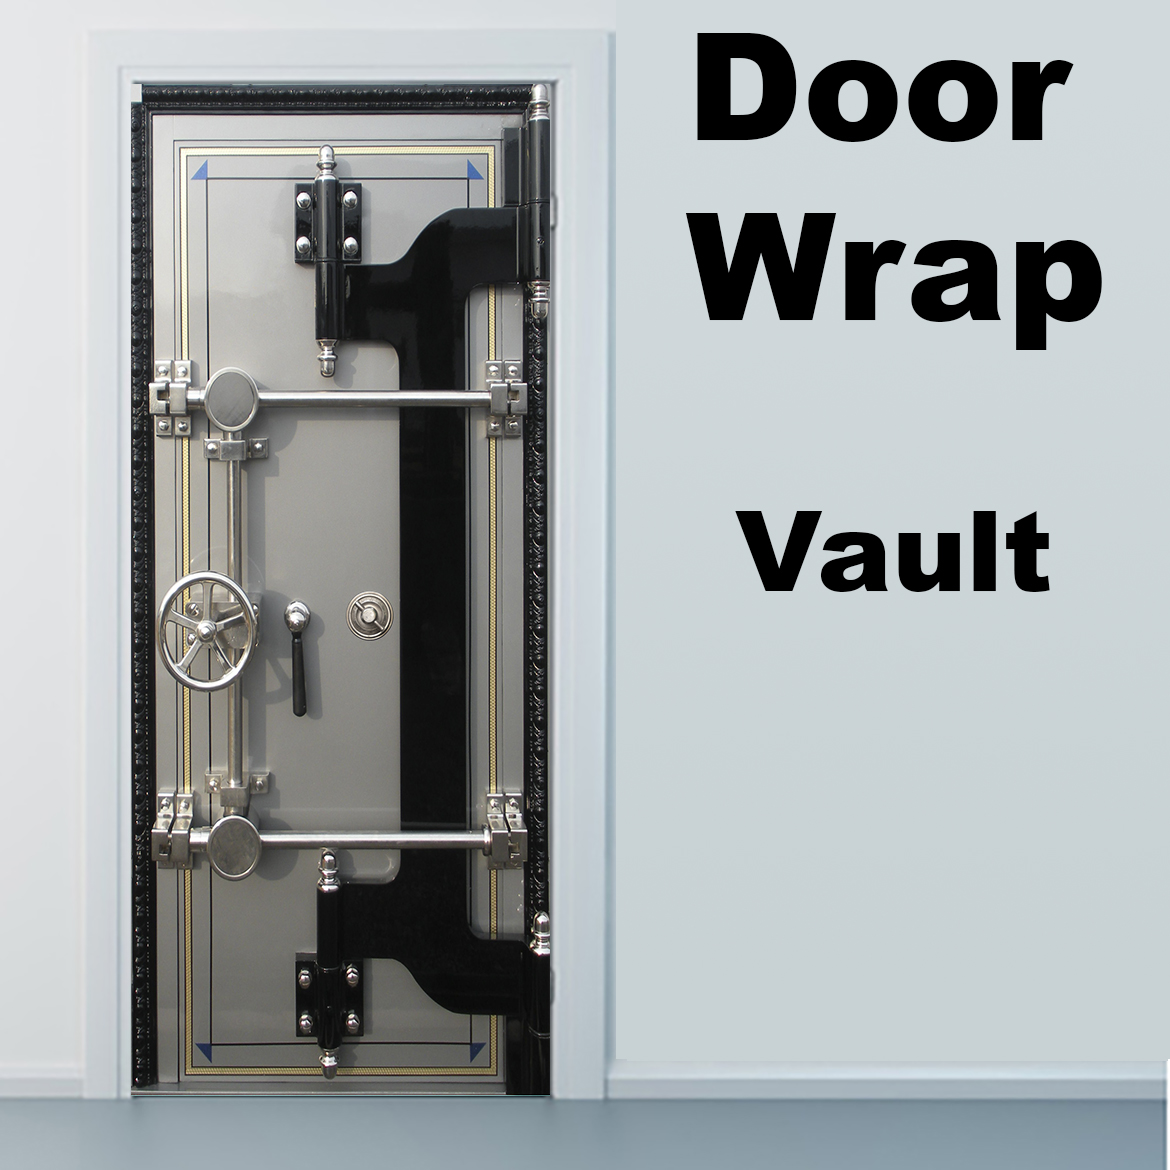 Copy Of Jail Door Door Wrap